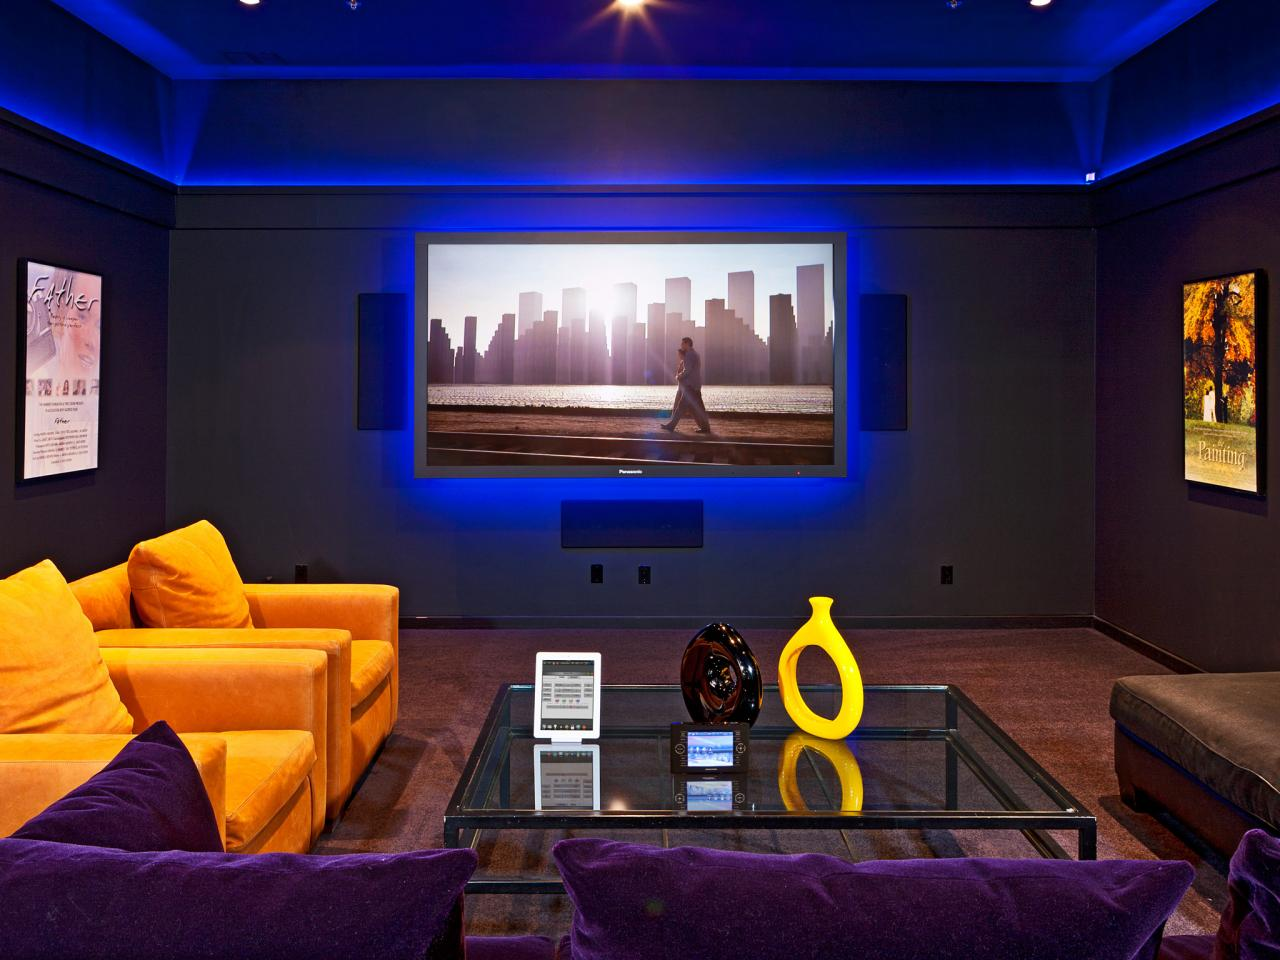 designer home theaters and media rooms - Home Theater Room Design